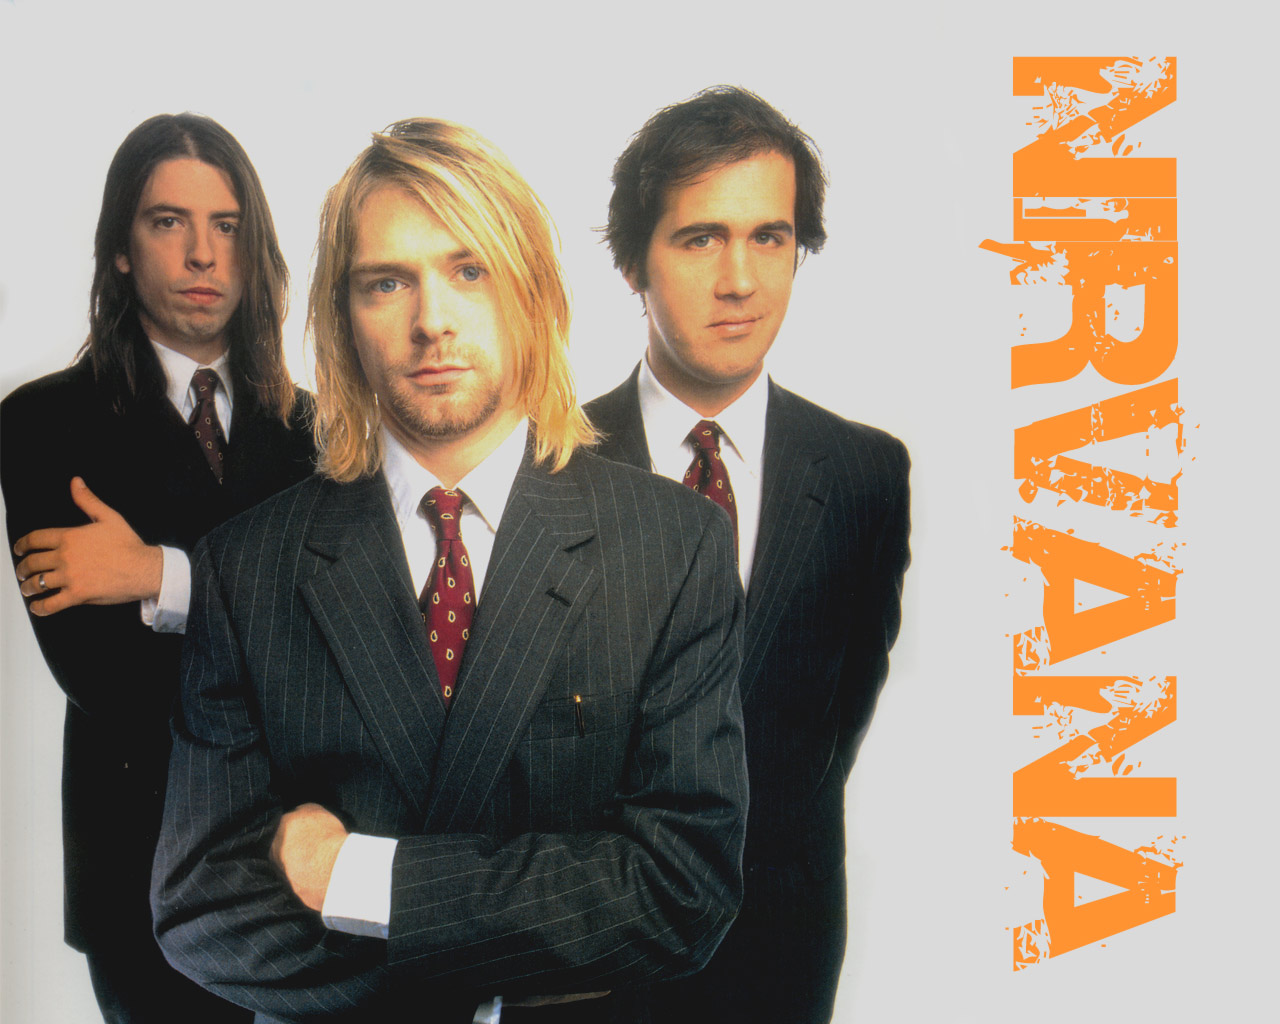 Formation of the Nirvana group in previously unpublished photos 11